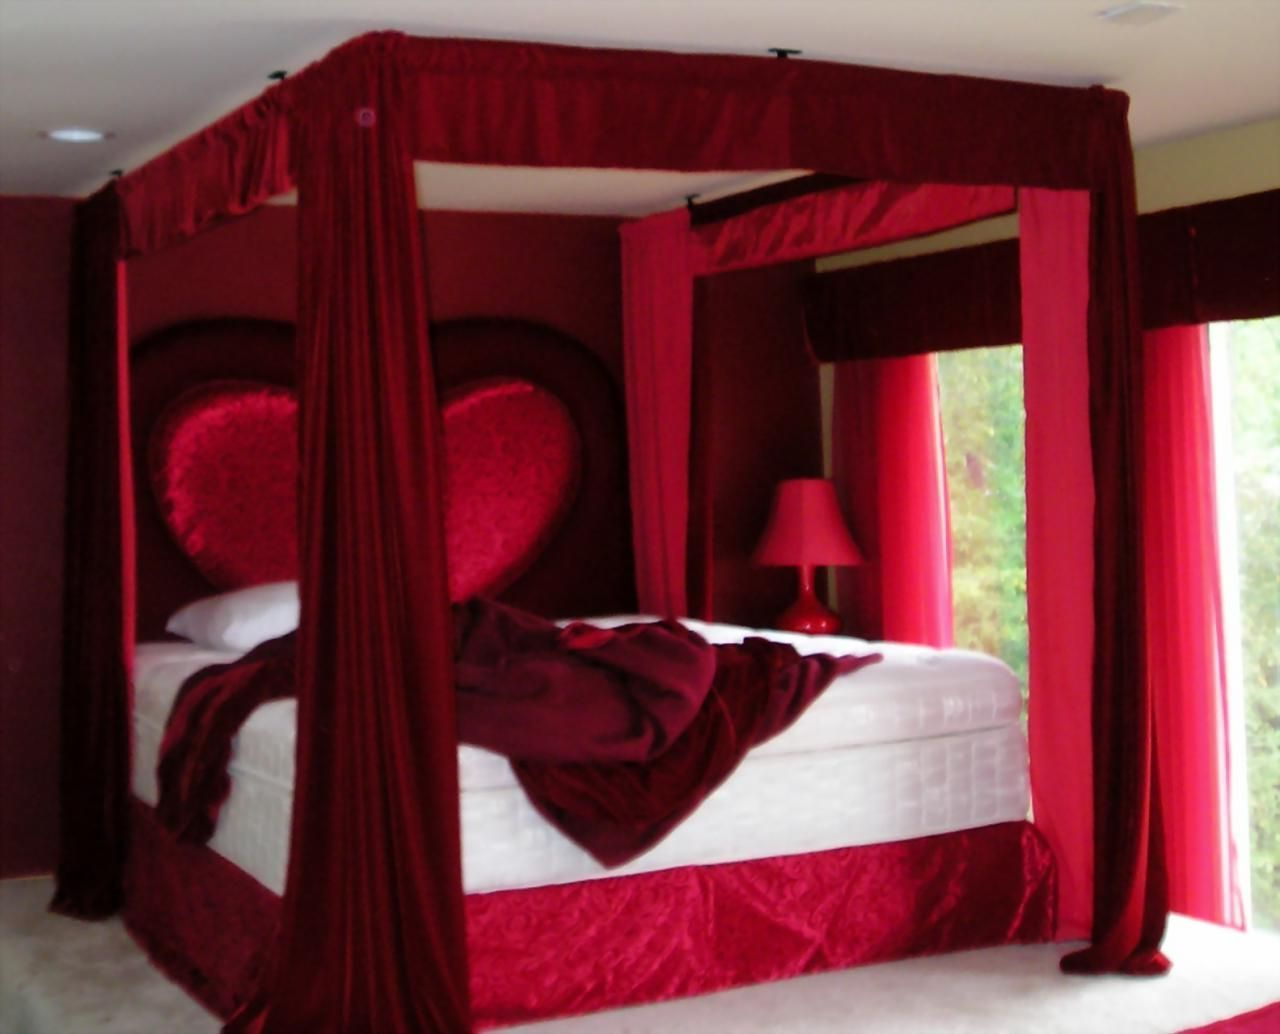 Romantic bedroom designs for couples - Bedroom Powerful Bedroom Design Ideas In Red Color Choices Lovable Bedroom Idea For Romantic